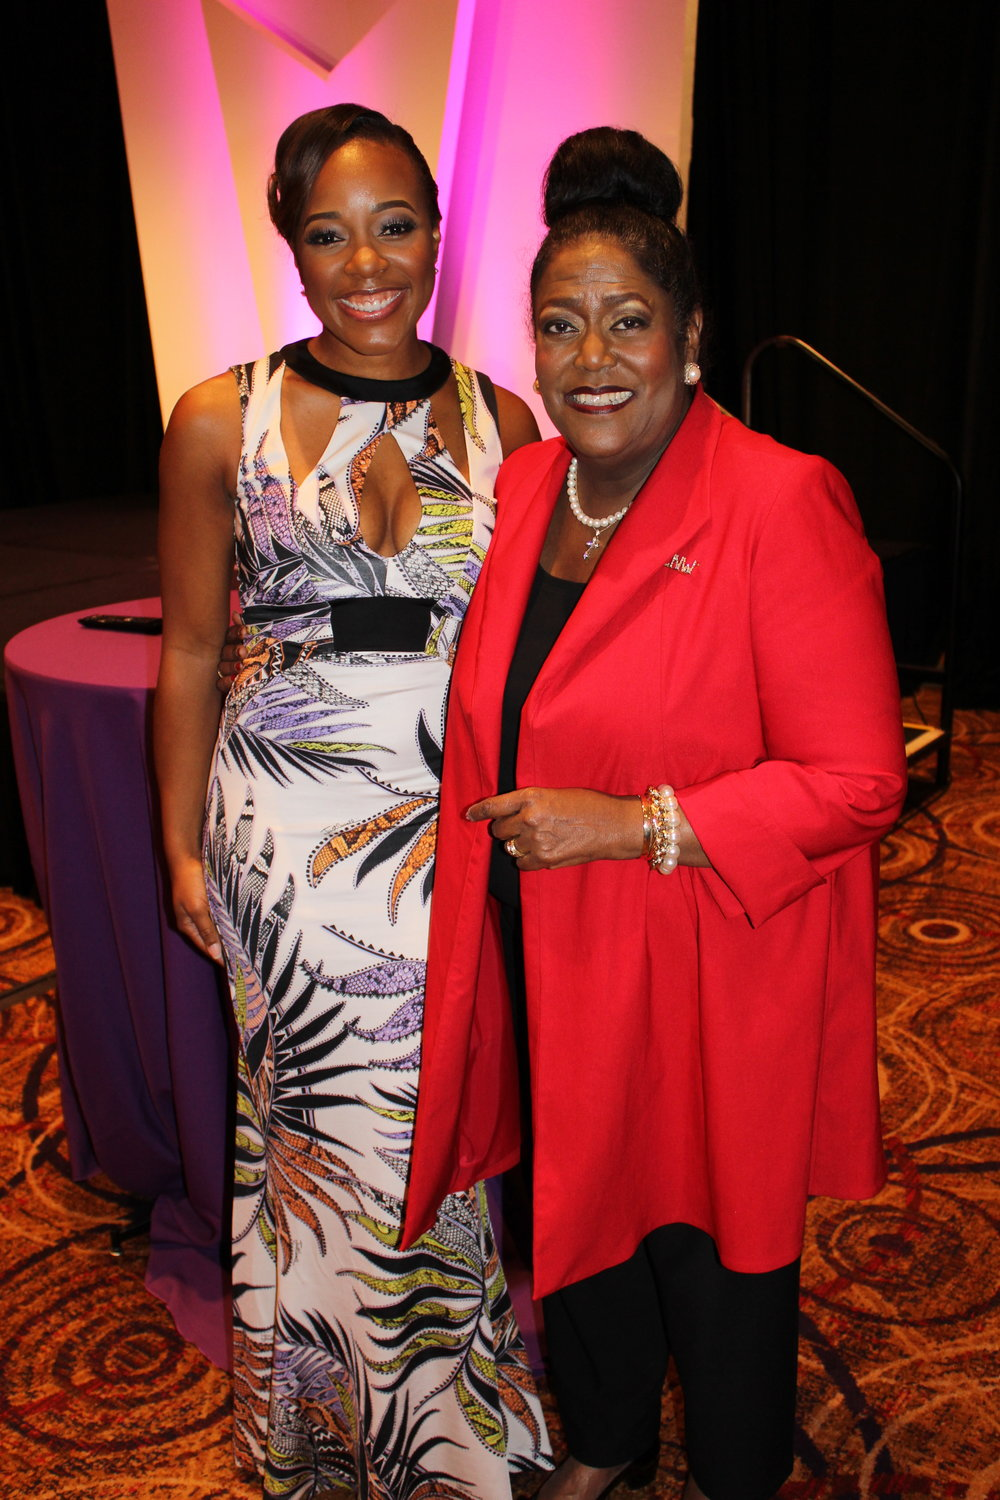 Dr. Novellus Pictured with Lifetime Award Winner:  Ingrid Saunders Jones, Leader and Advocate for Women and Chair of the National Council of Negro Women